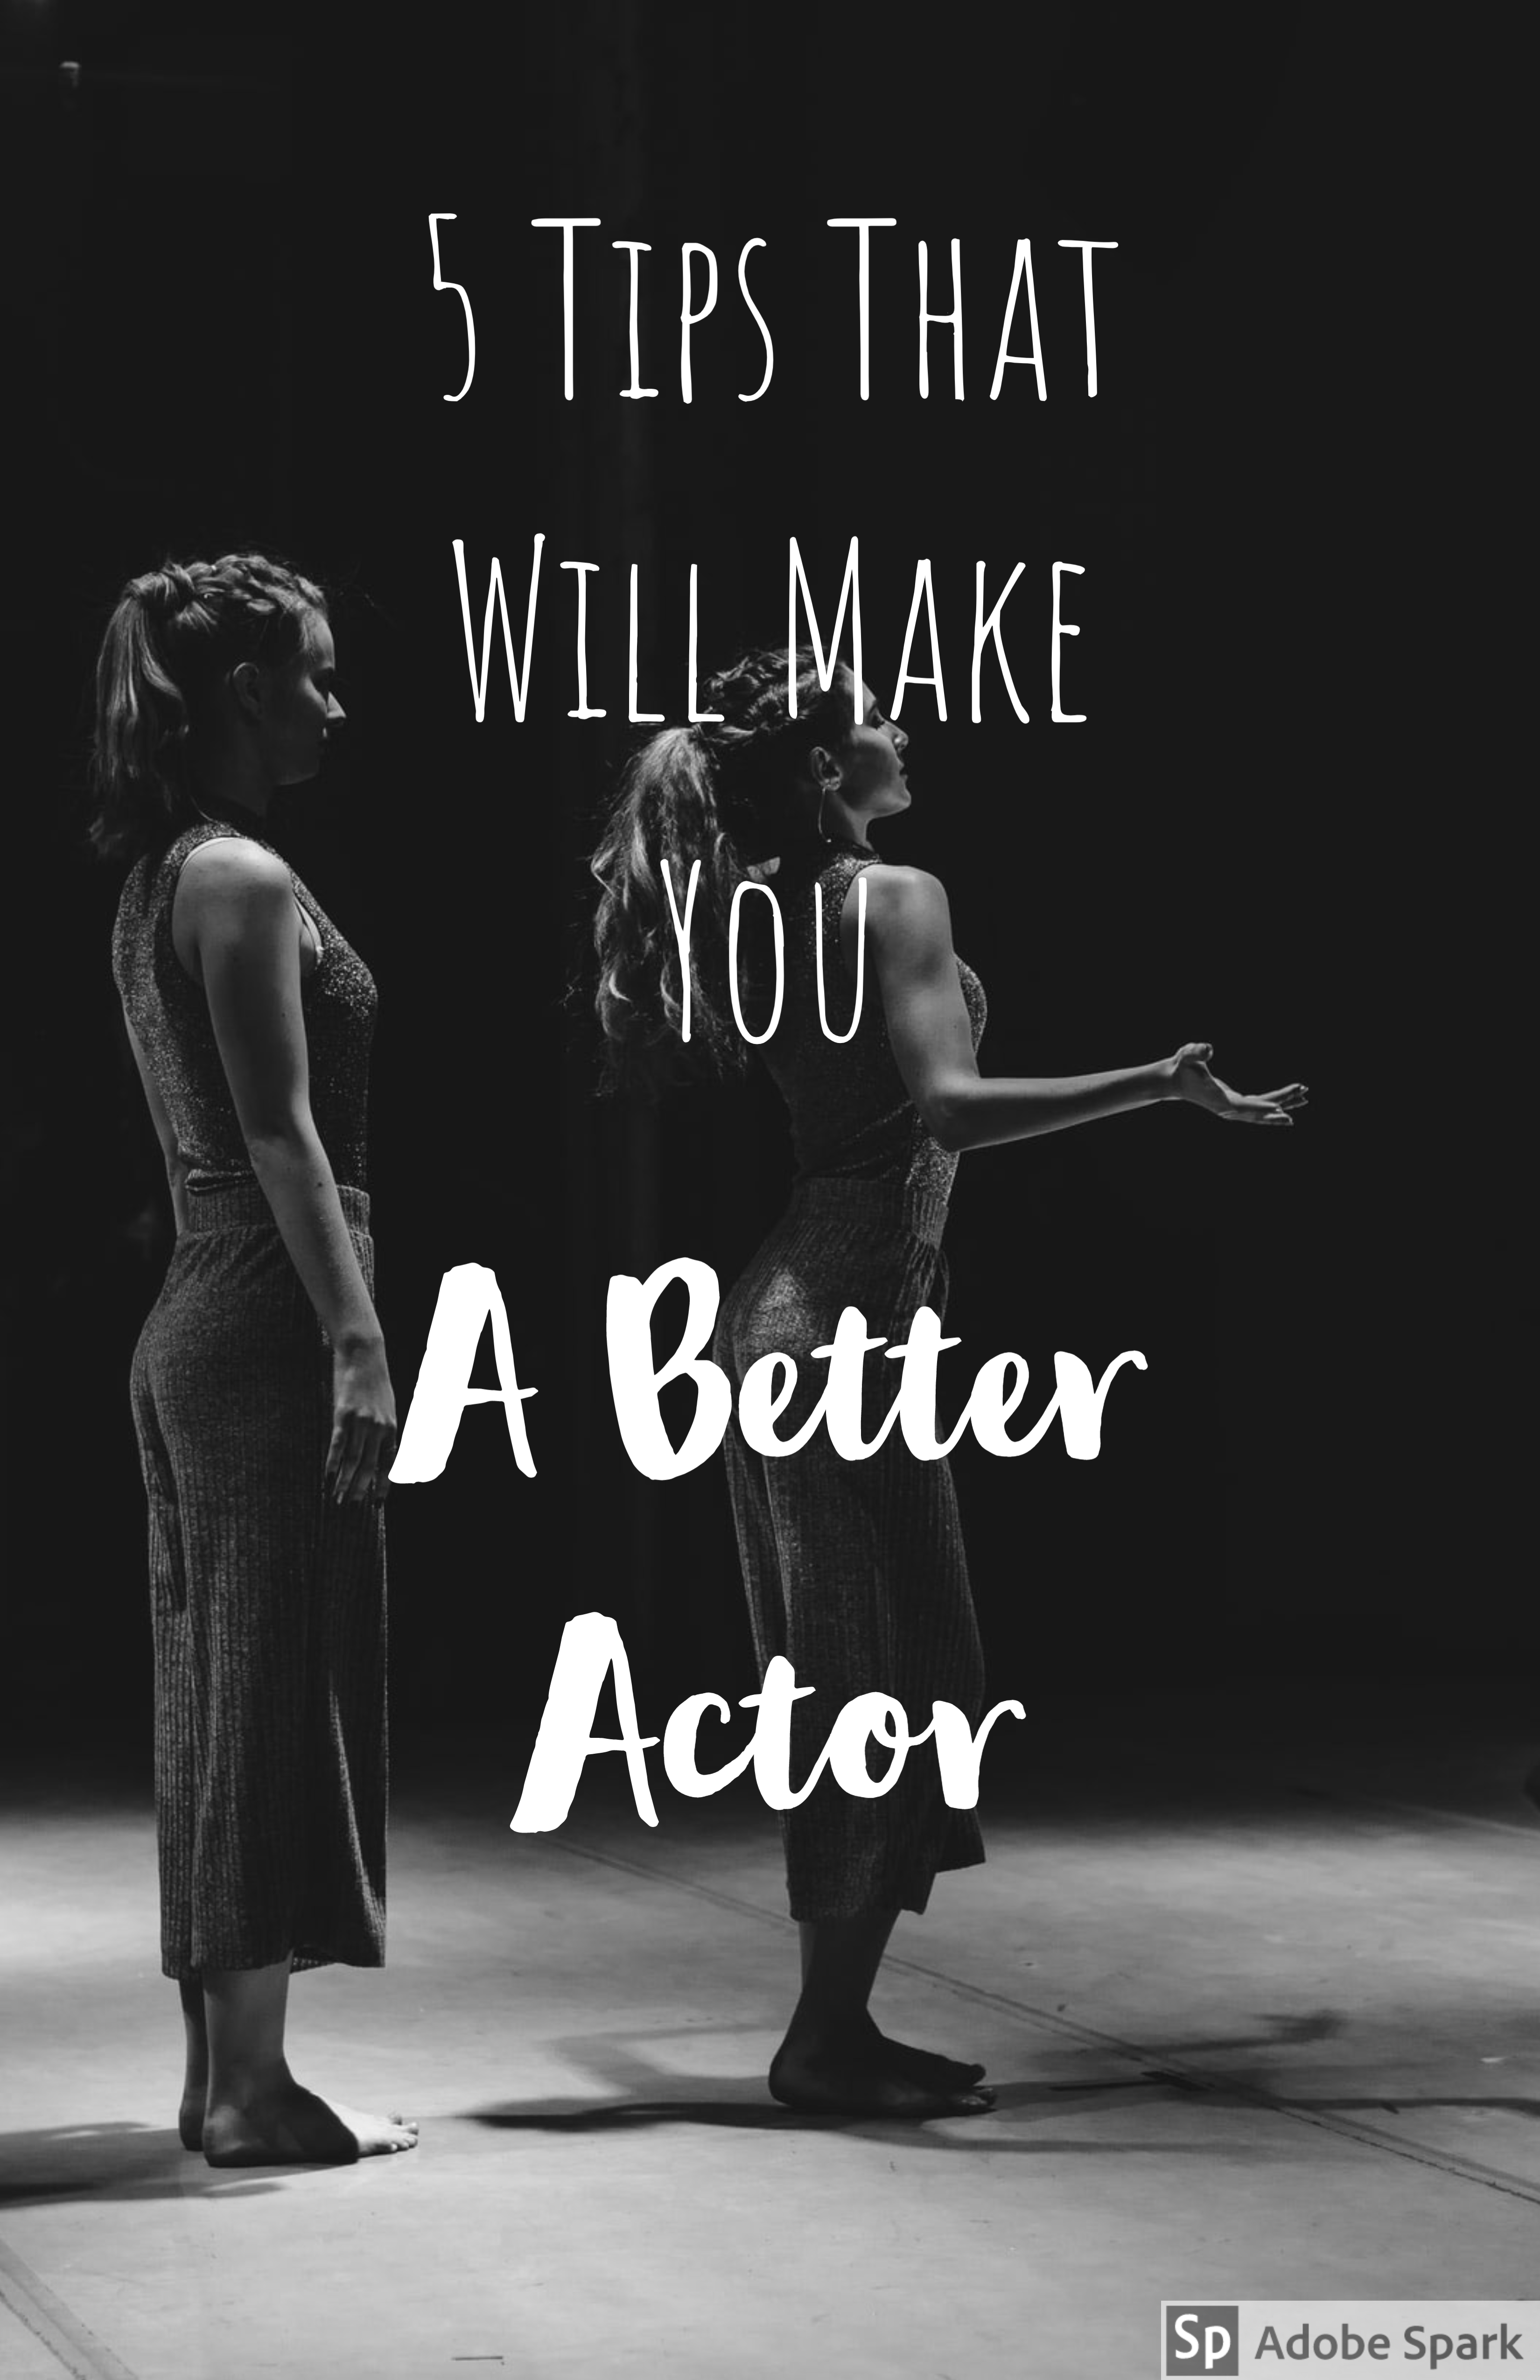 5 Tips That Will Make You A Better Actor